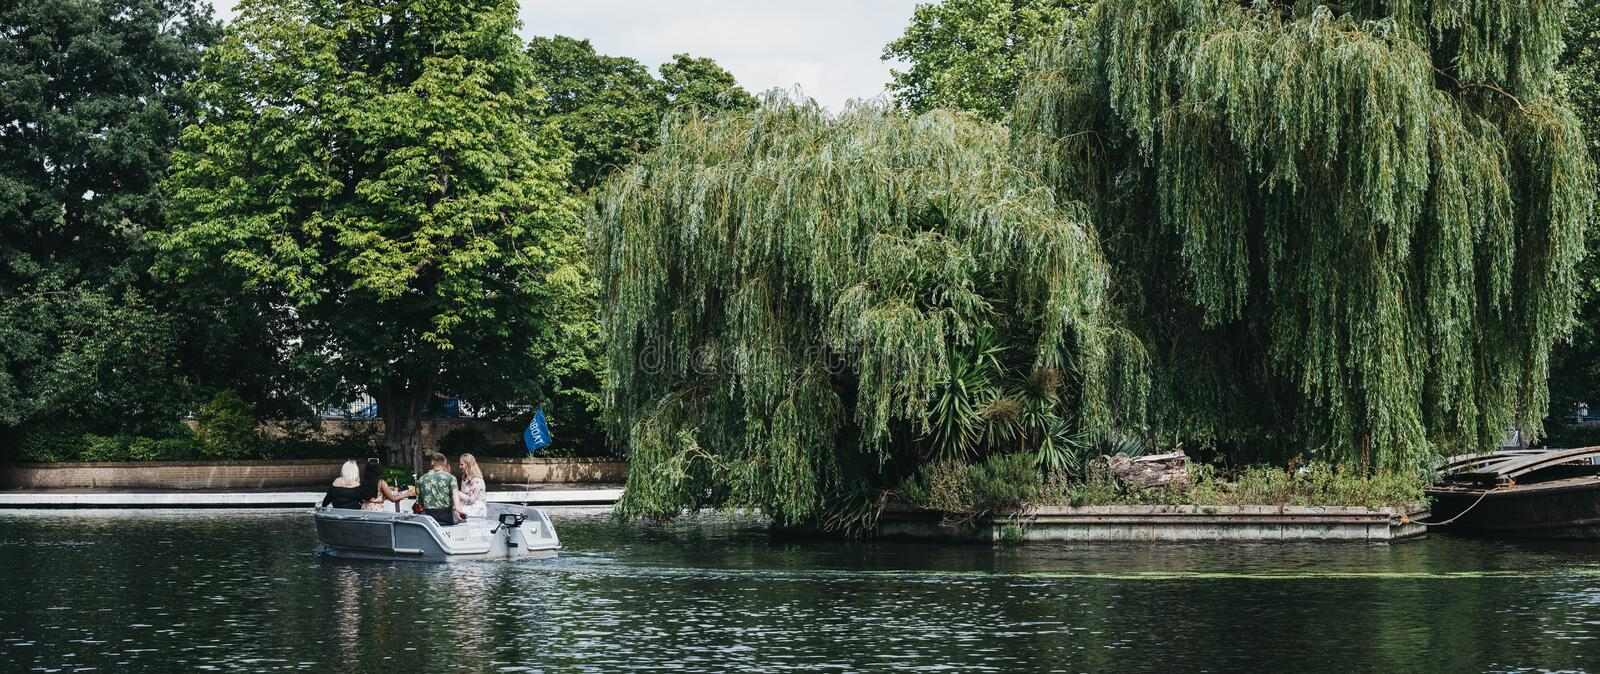 Panorama of people having a picnic on a boat on Regents Canal in Little Venice, London, UK. London, UK - July 18, 2019: Panoramic view of people having a picnic royalty free stock images